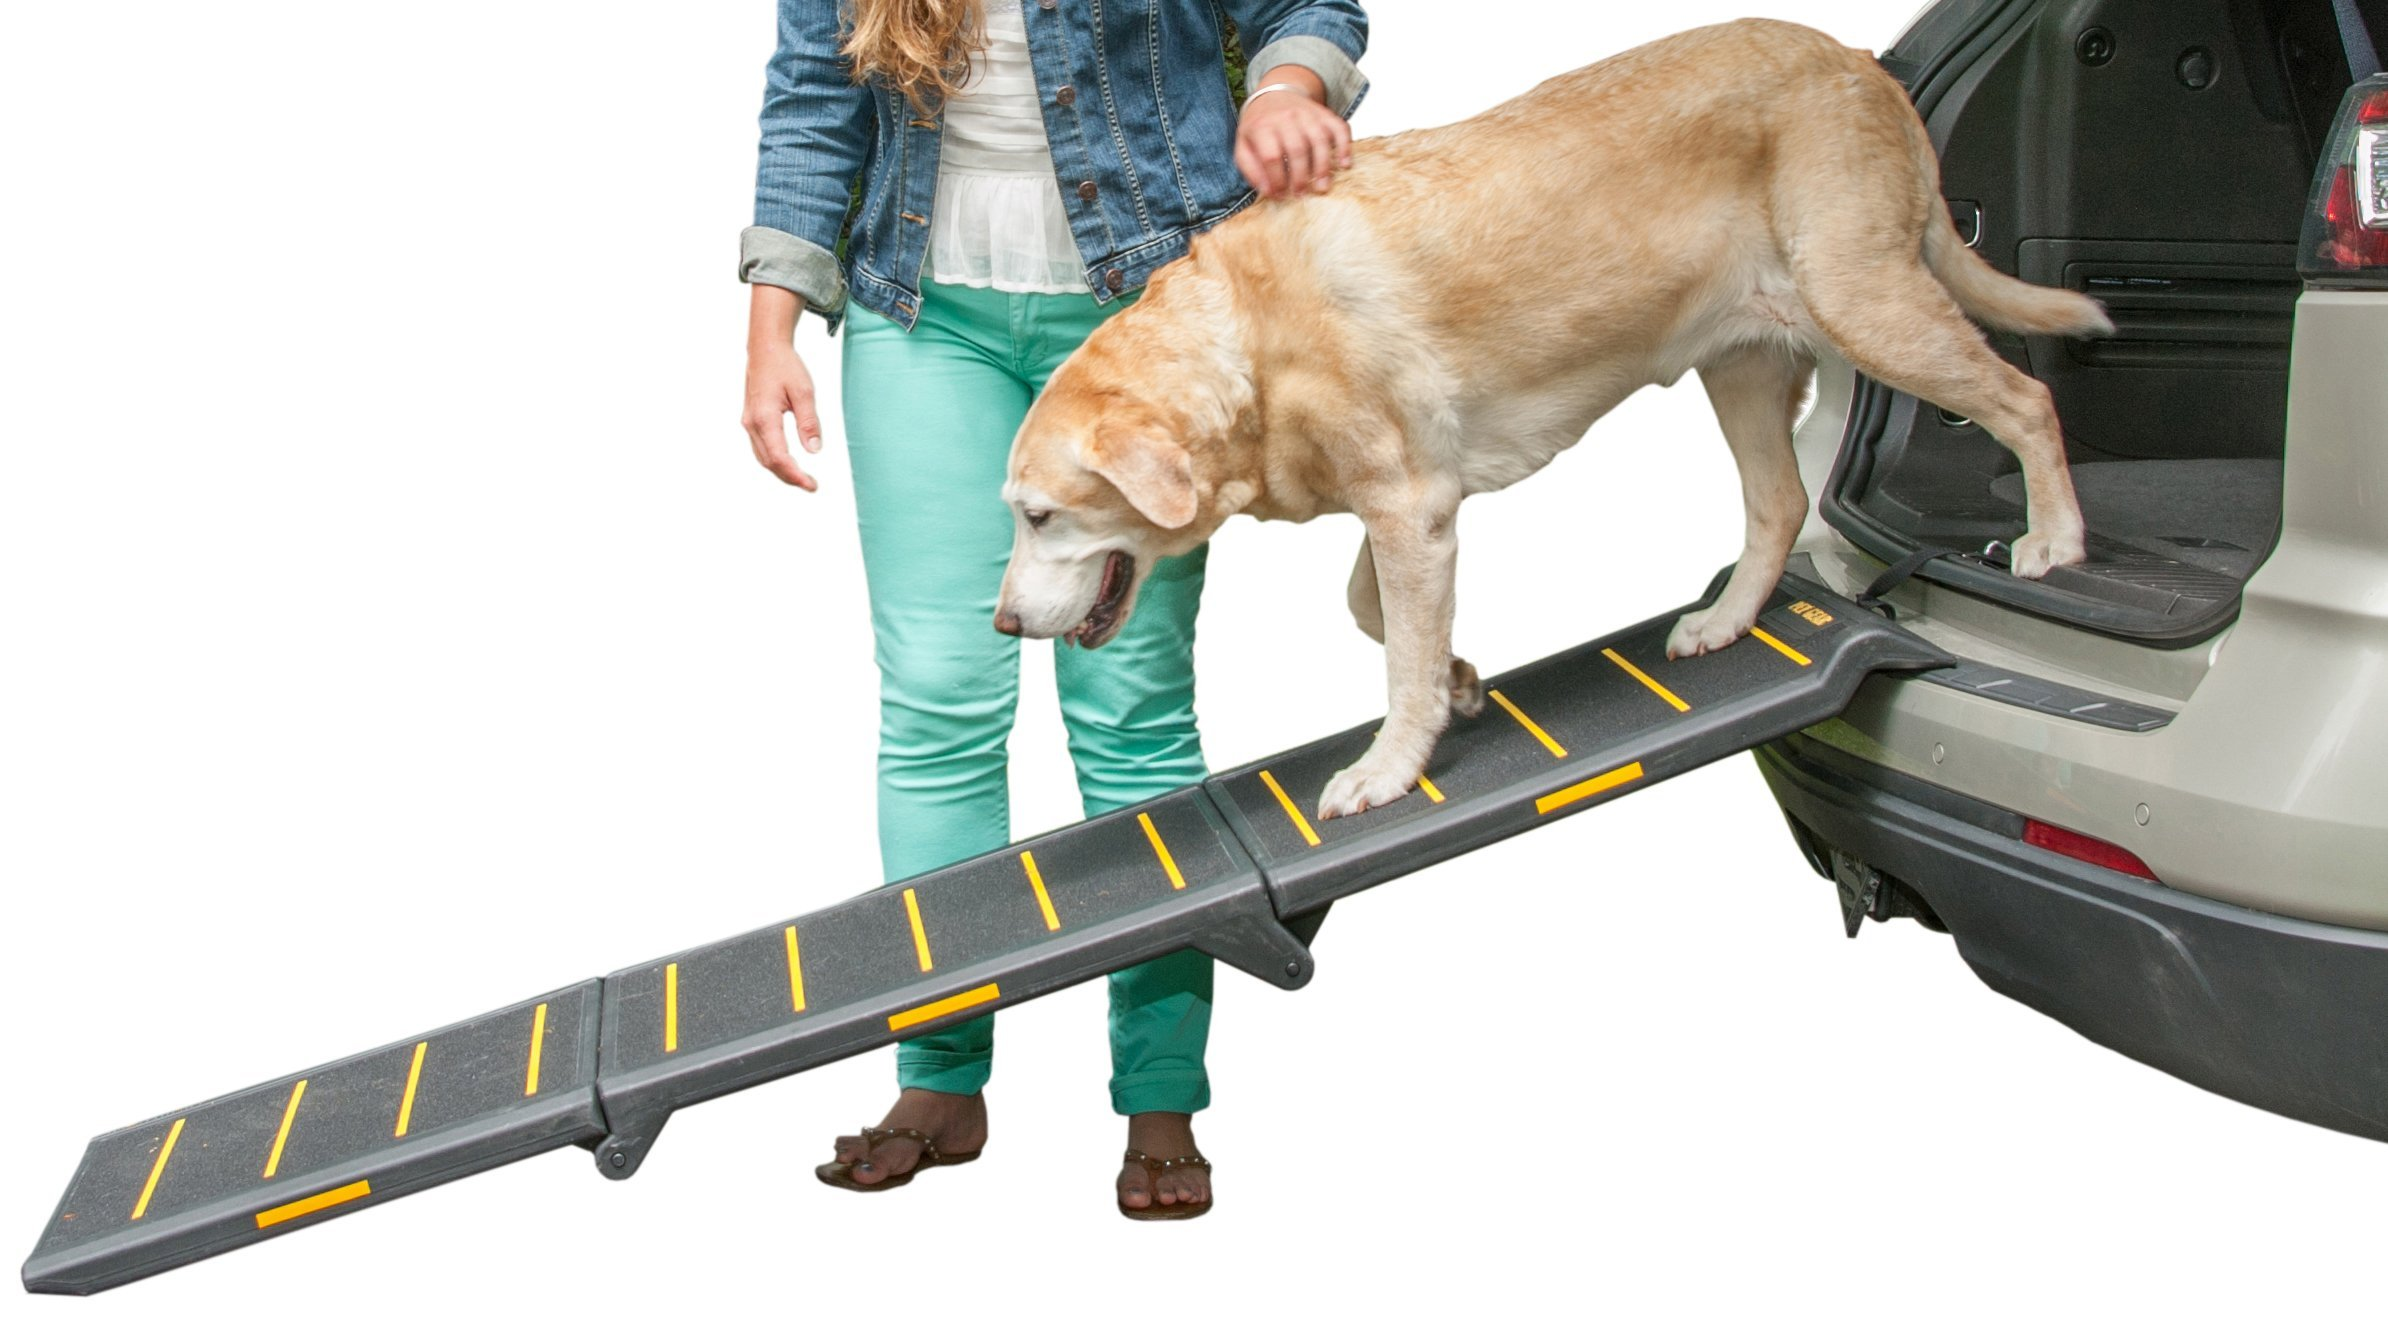 Pet Gear Tri-Fold Ramp 71 inch Extra Wide Pet Ramp Holds 200LBS, Black/Yellow(Reflective) Extra Wide by Pet Gear